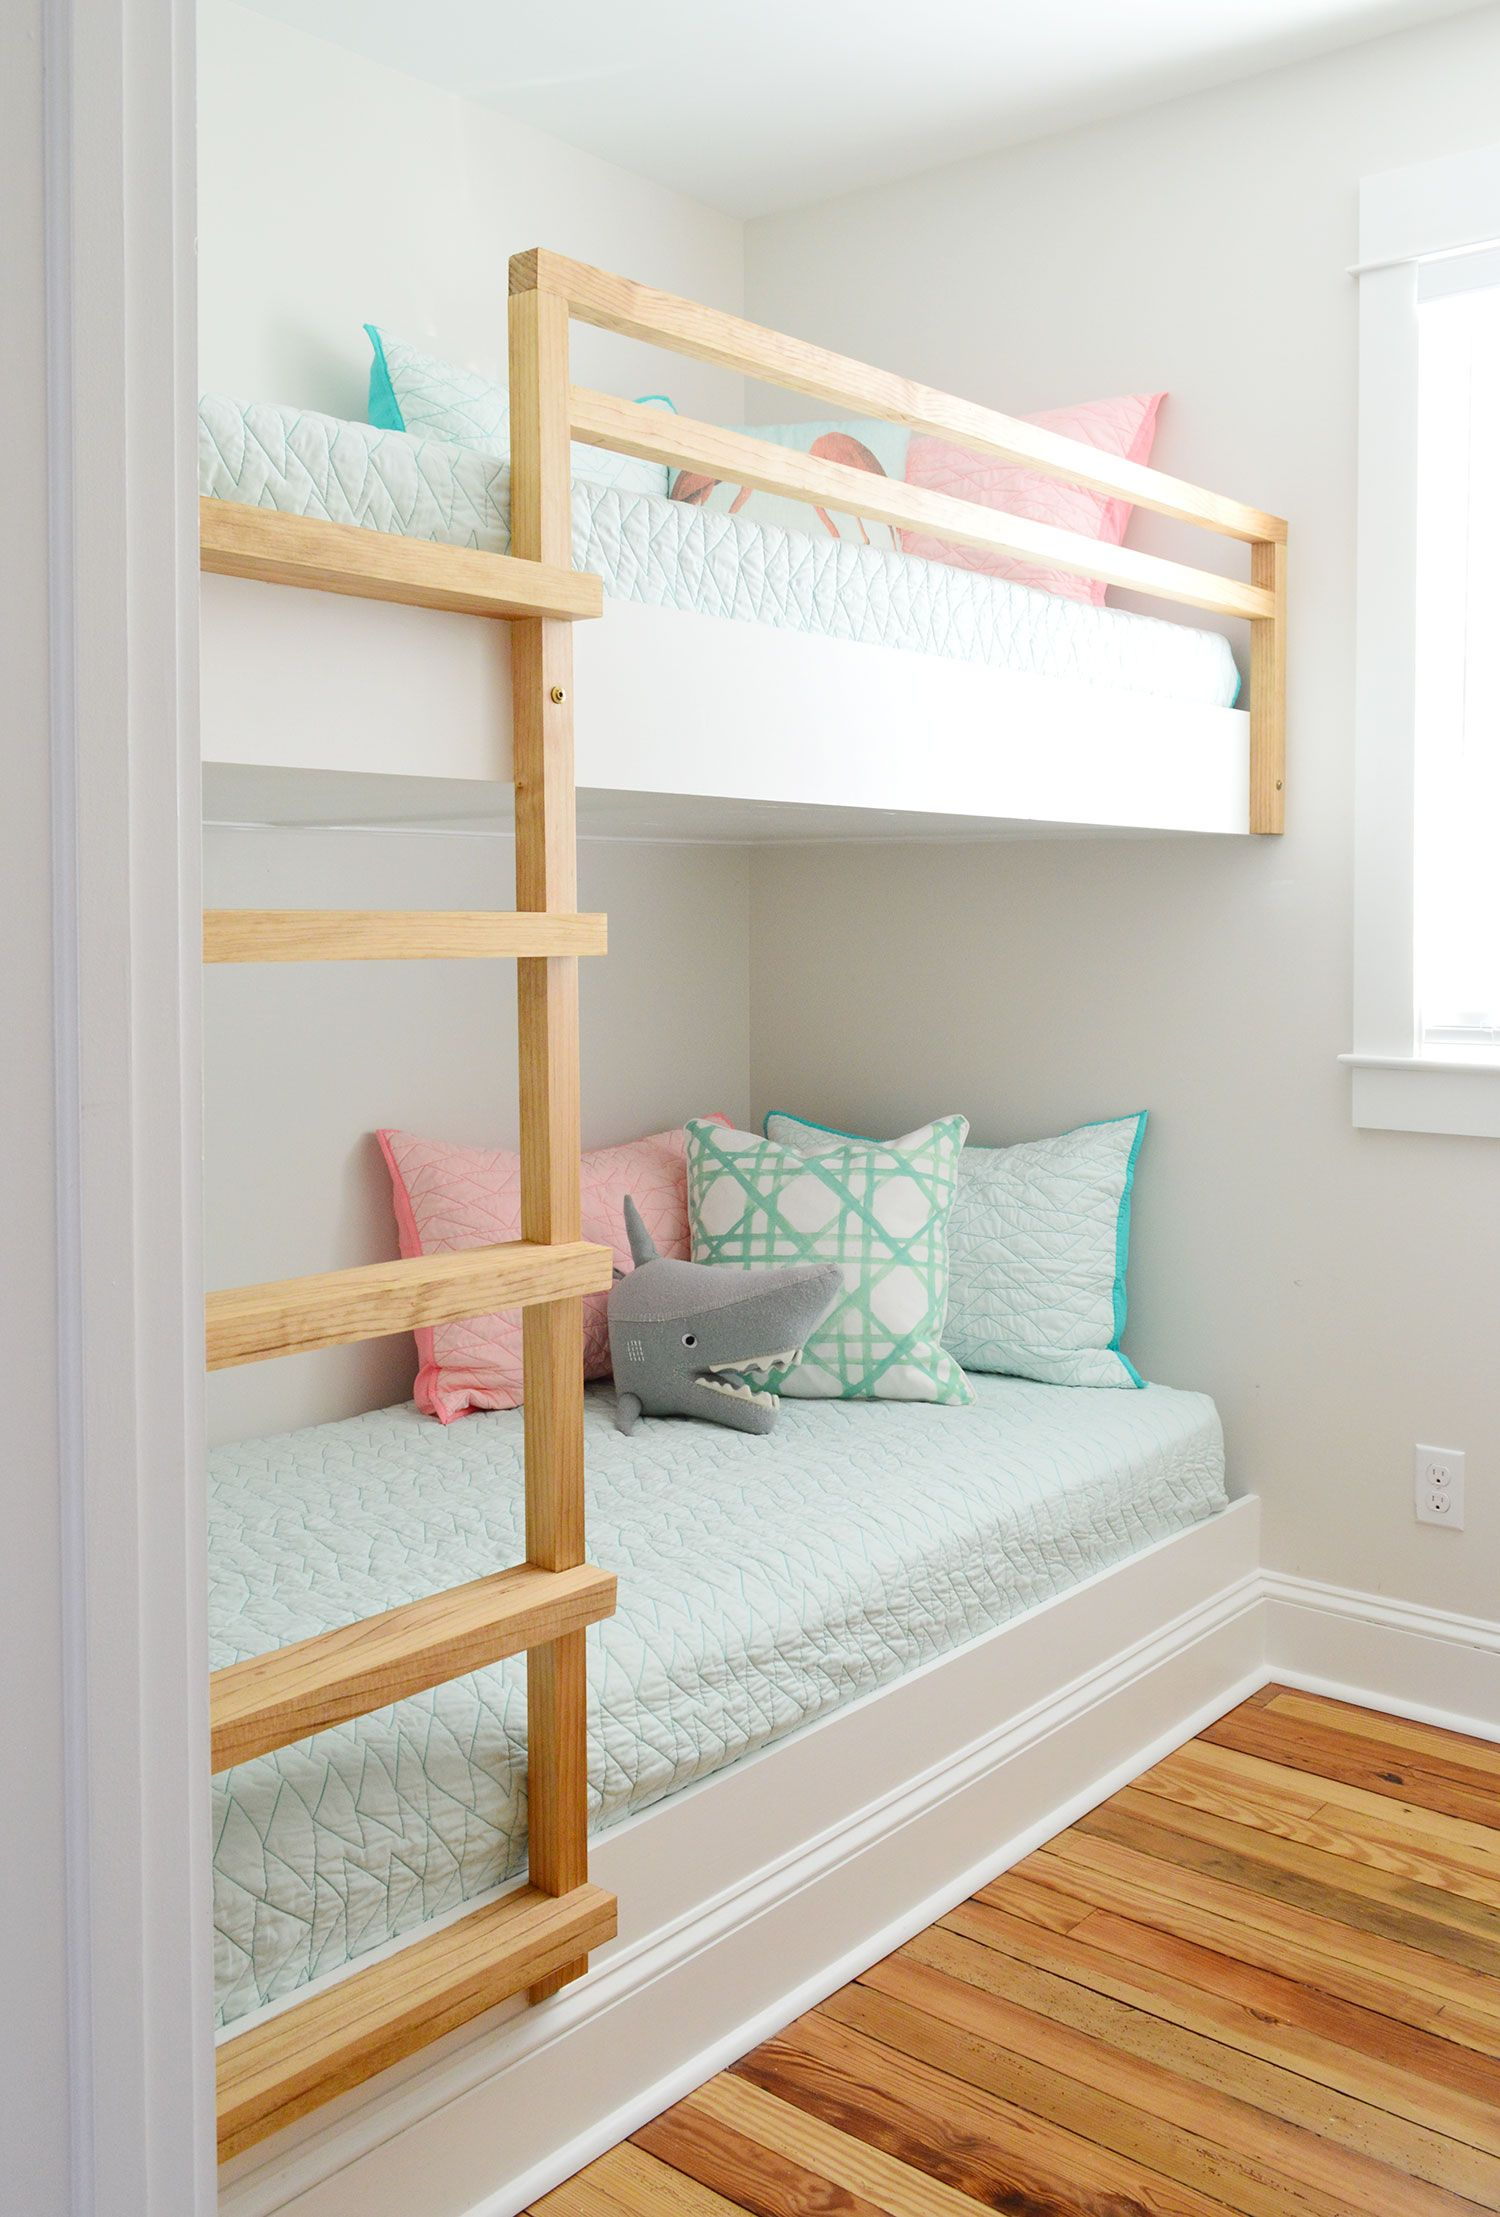 How To Make Diy Built In Bunk Beds Bunk Beds Built In Bunk Bed